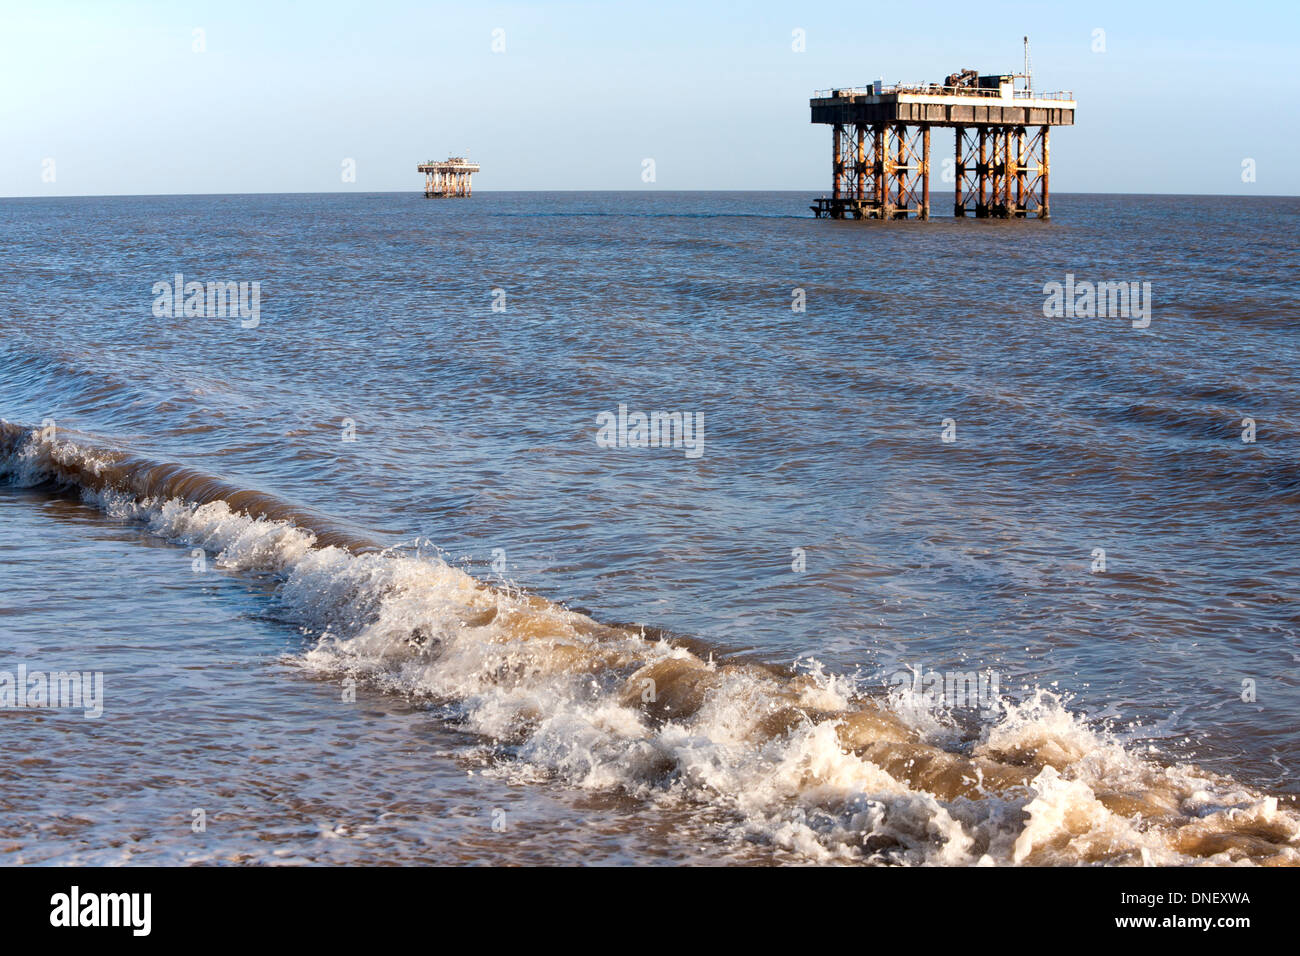 Offshore water supply platforms for Sizewell nuclear power station, Leiston, Suffolk, England - Stock Image